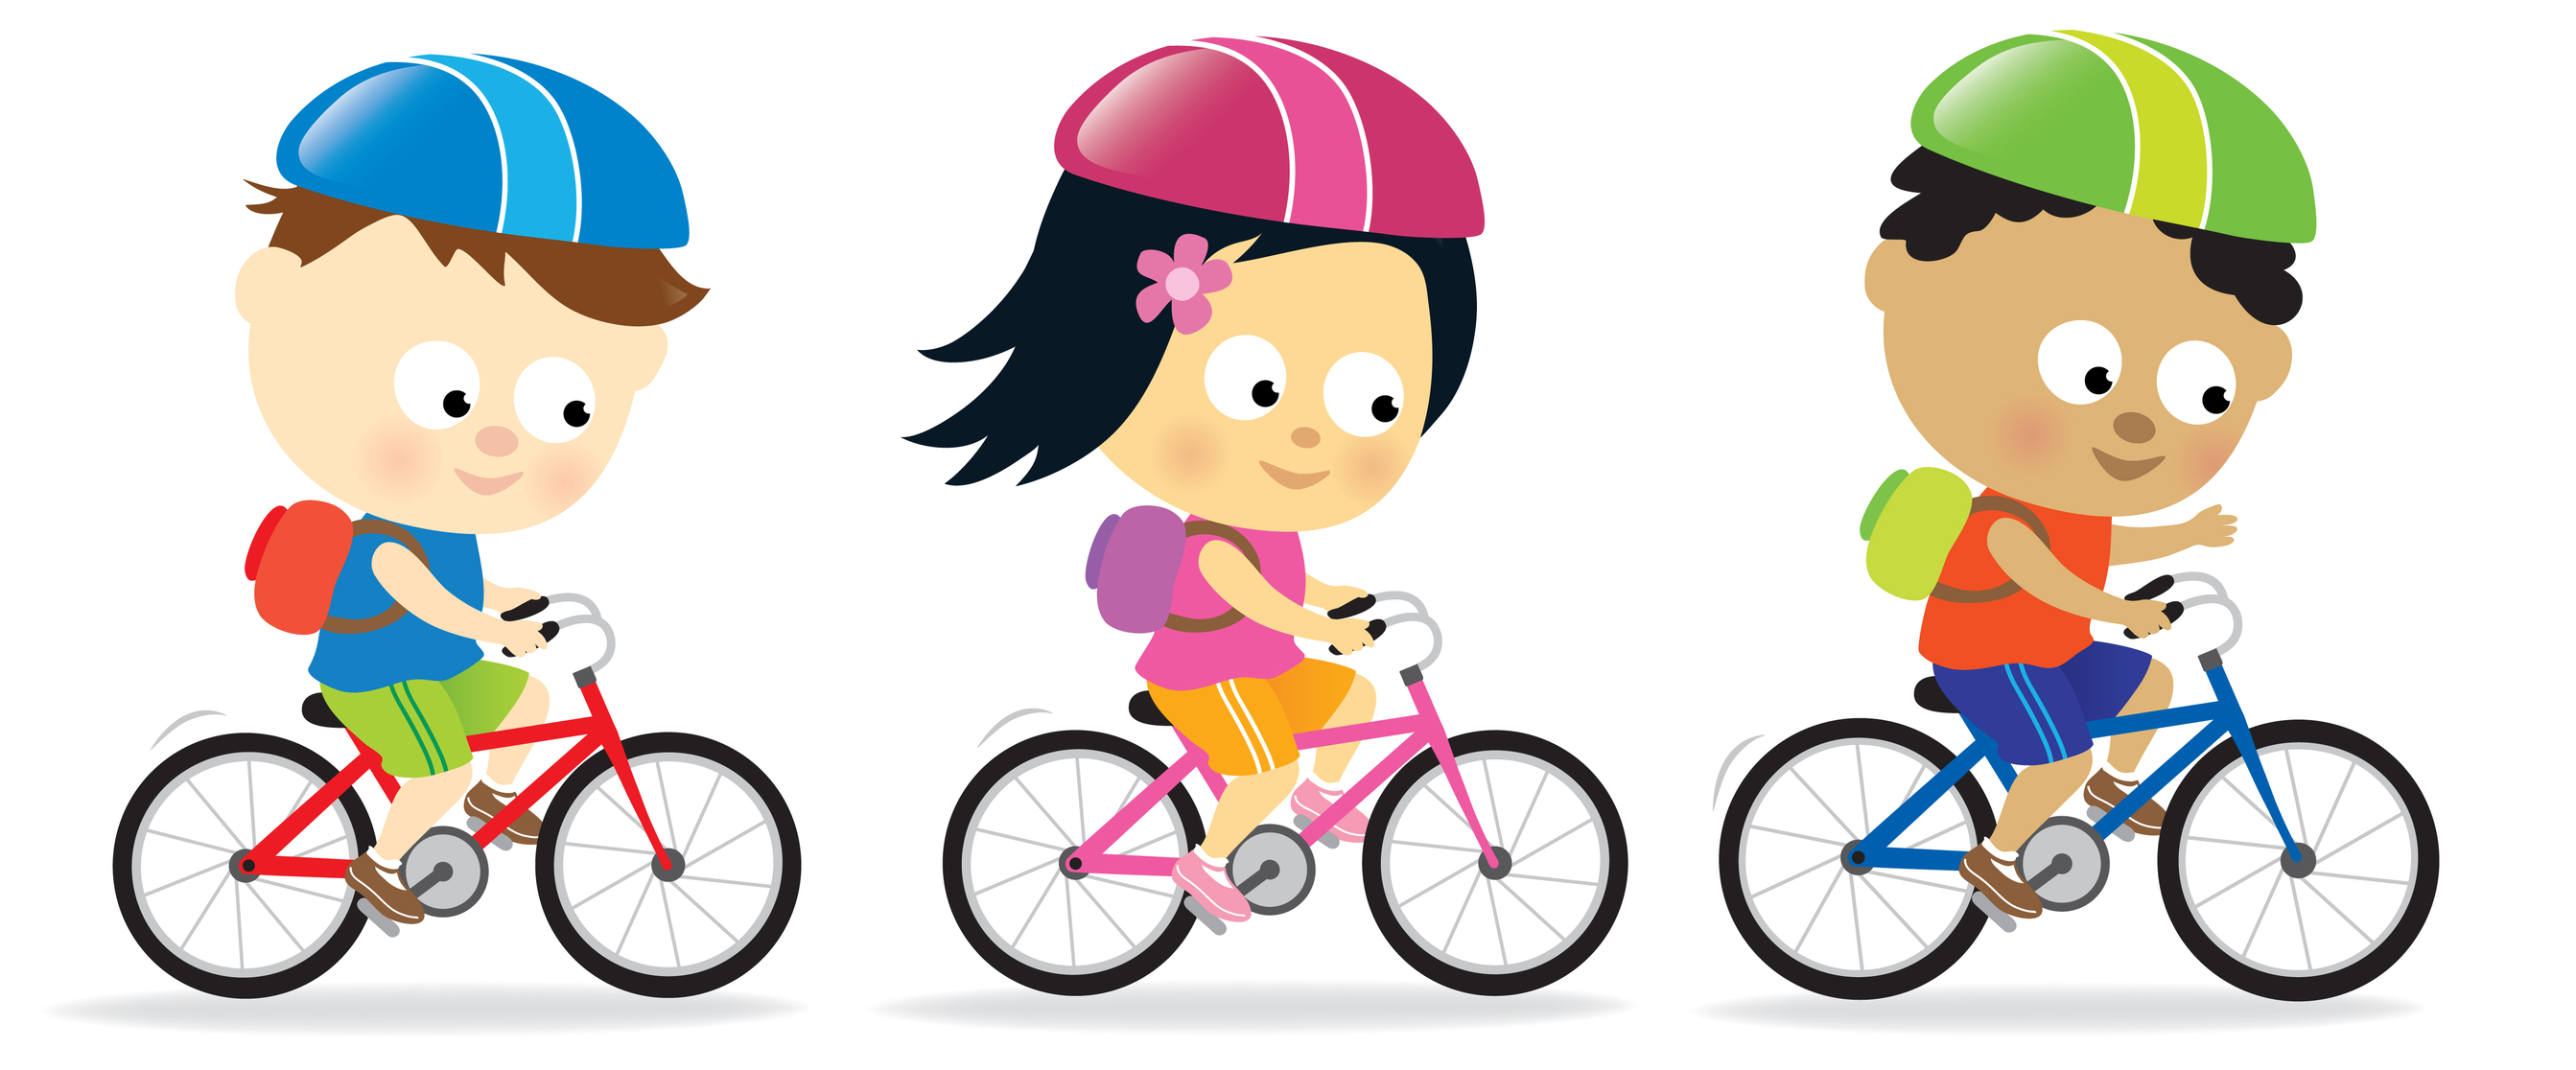 Safety . Bicycle clipart kid bike